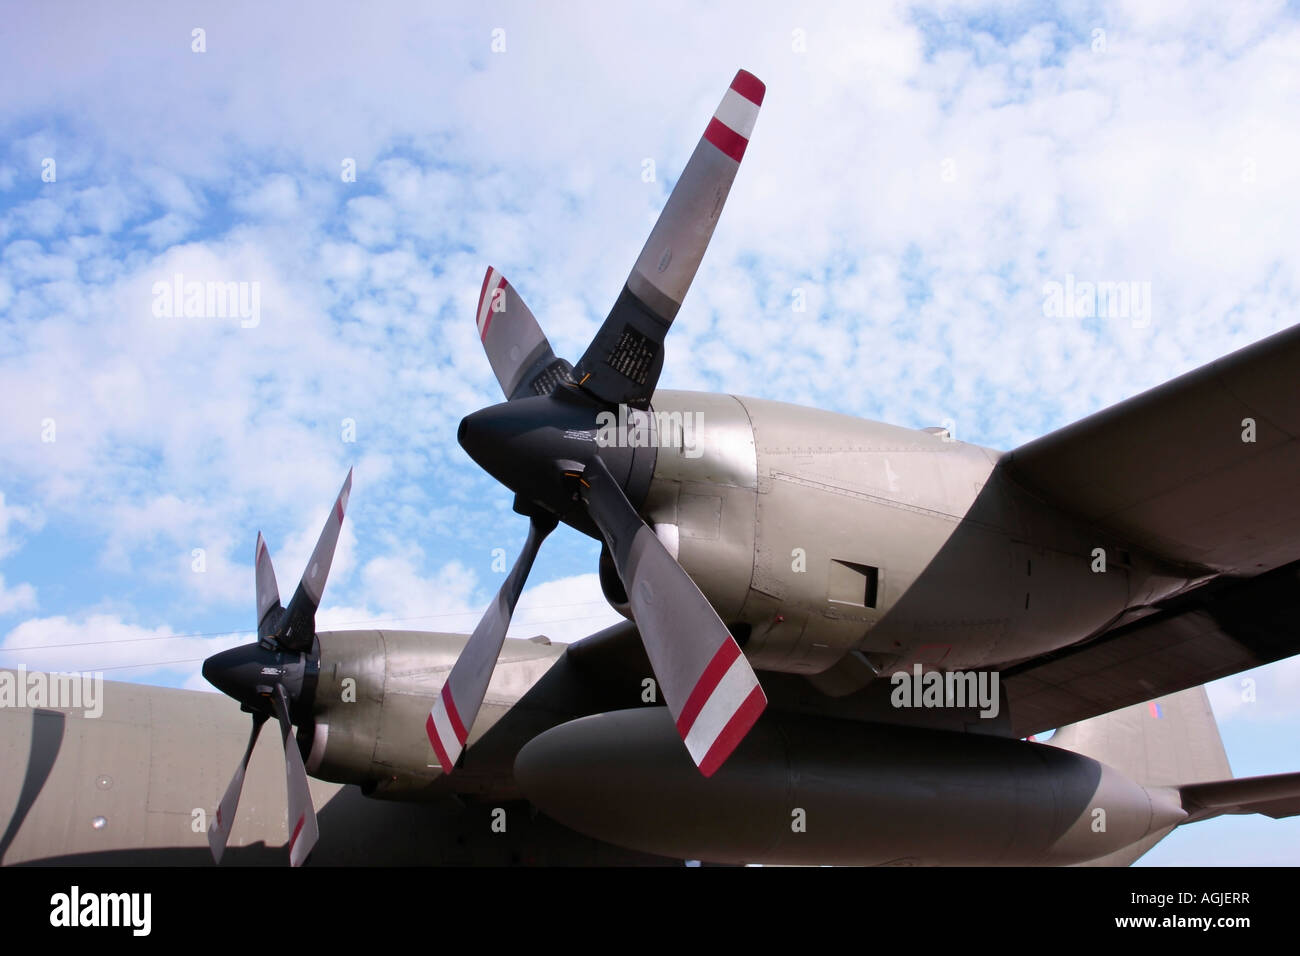 Two of the four turboprop engines of the Hercules C-130 Stock Photo